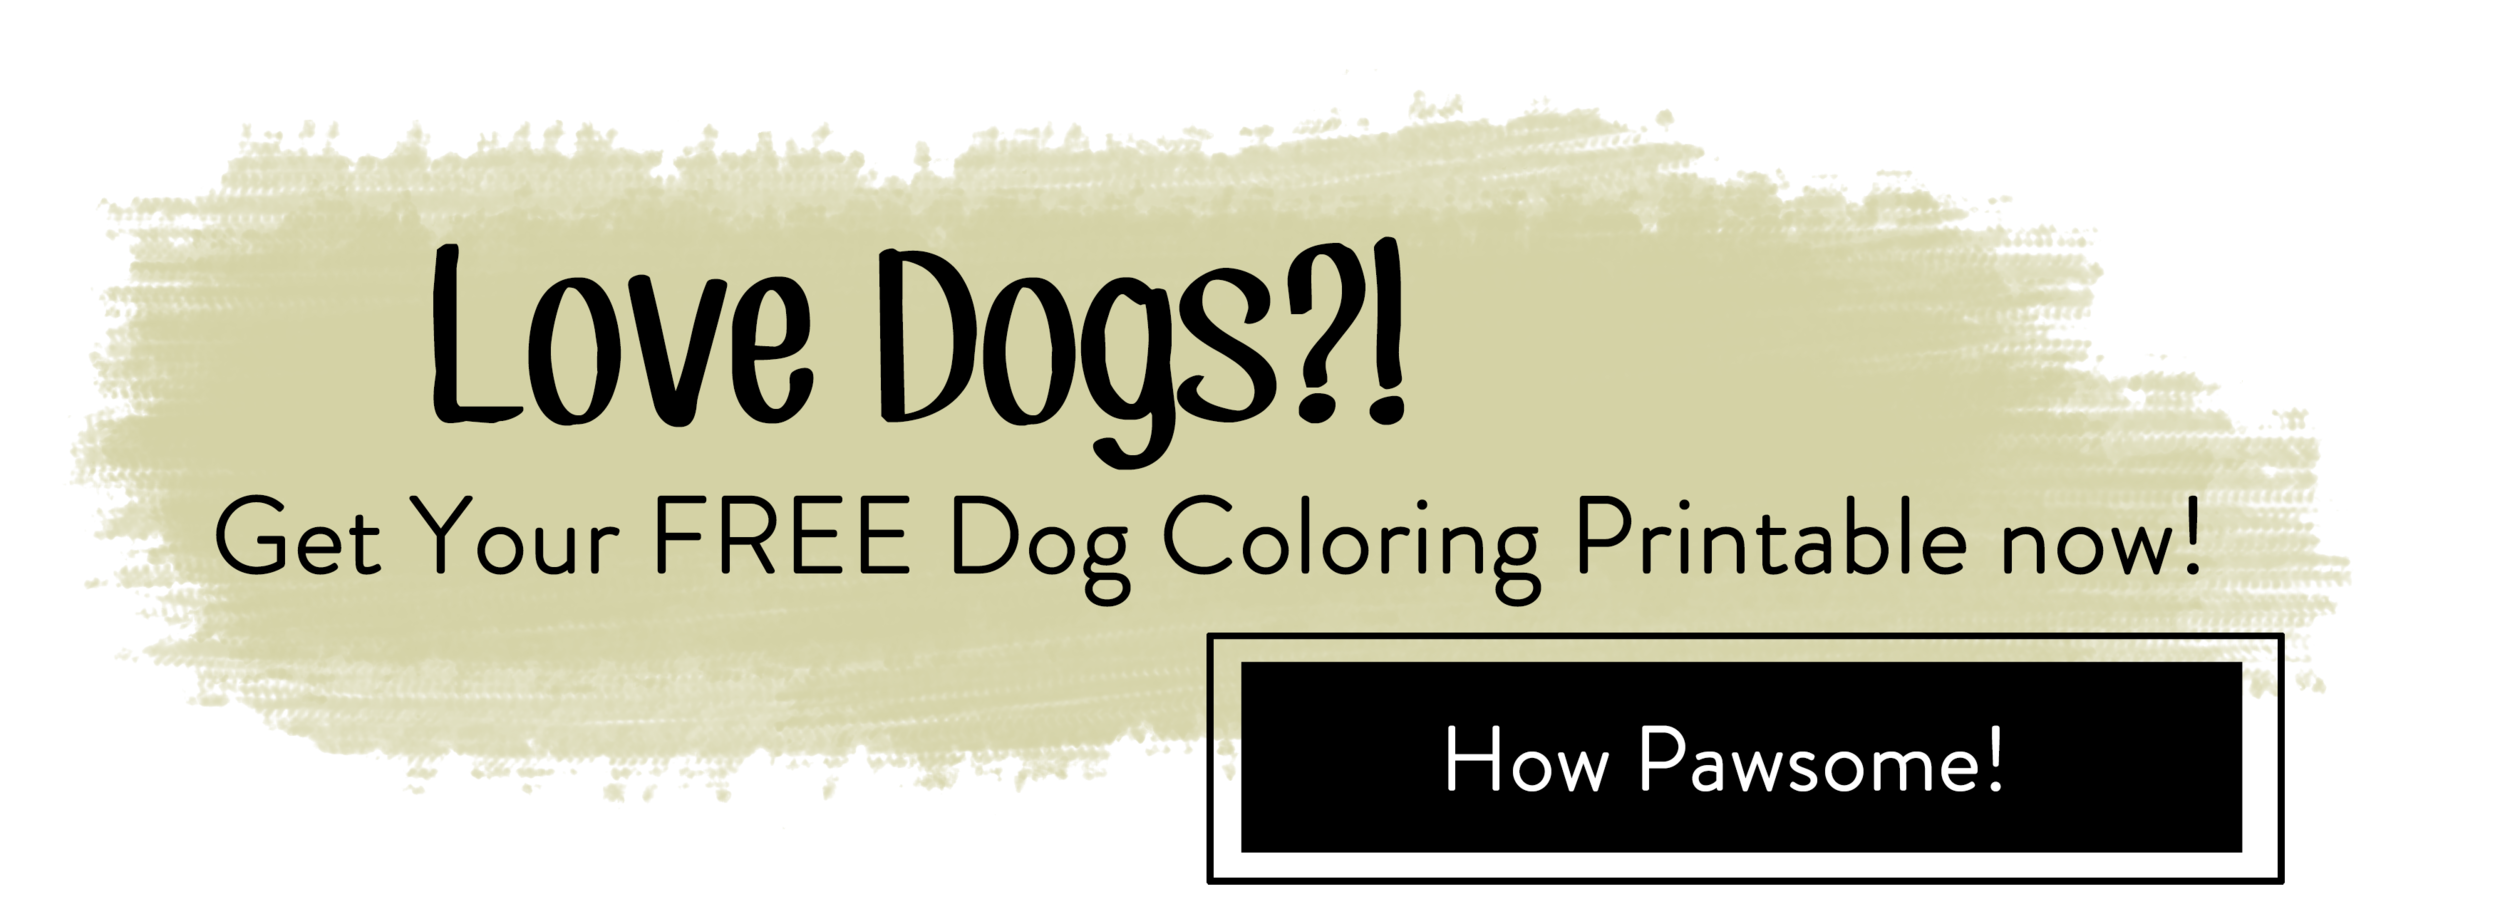 dog coloring page #coloringpages